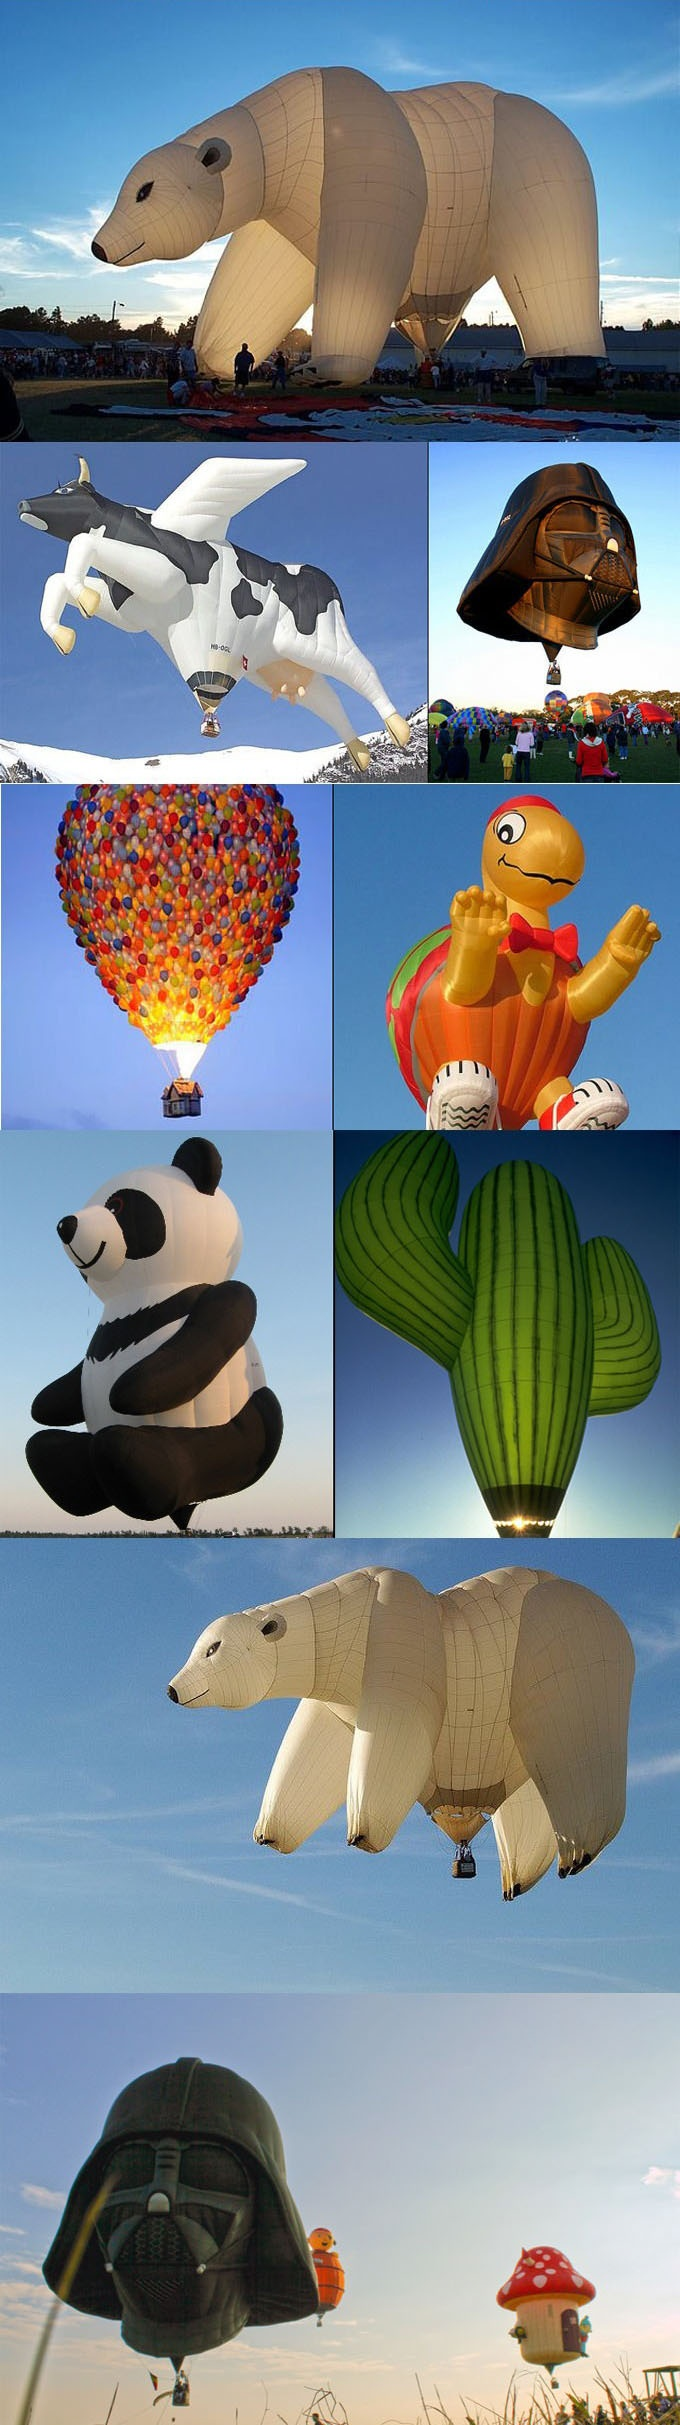 so cool! i wanna ride a hot air ballon...and these would be ten times better ahah